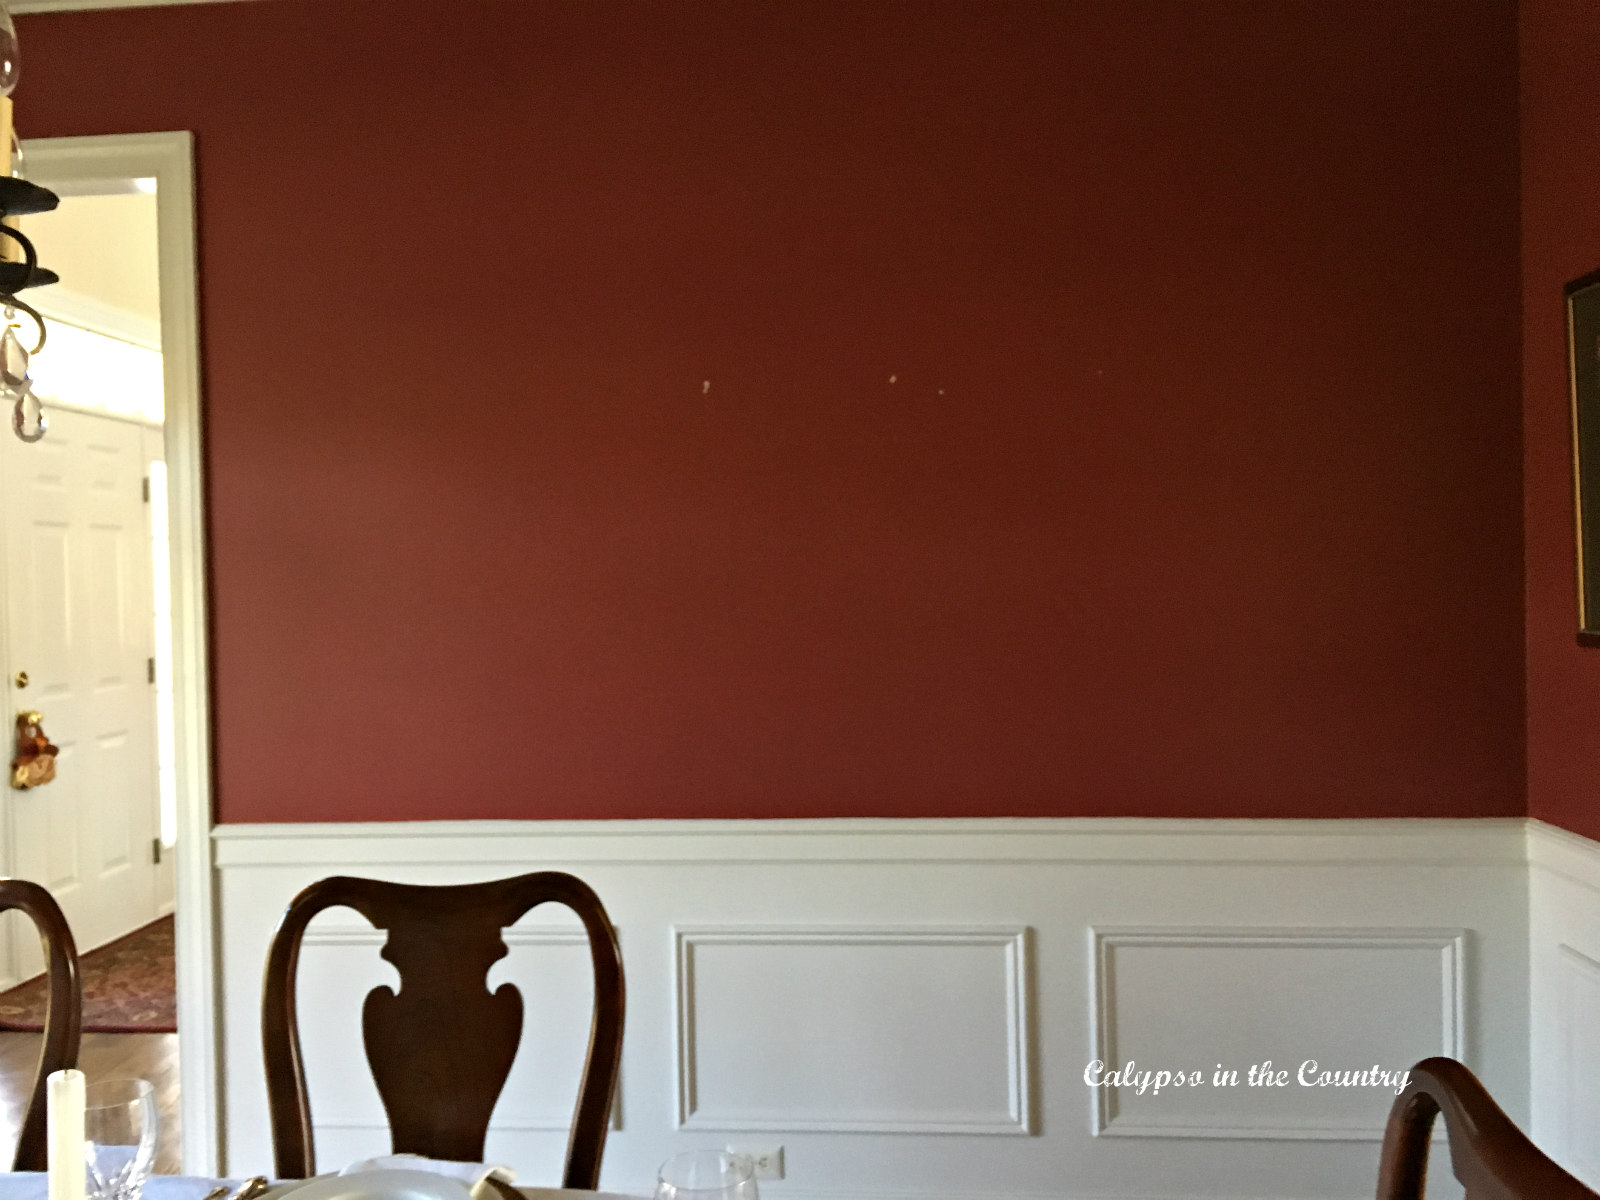 Red dining room wall with nail holes